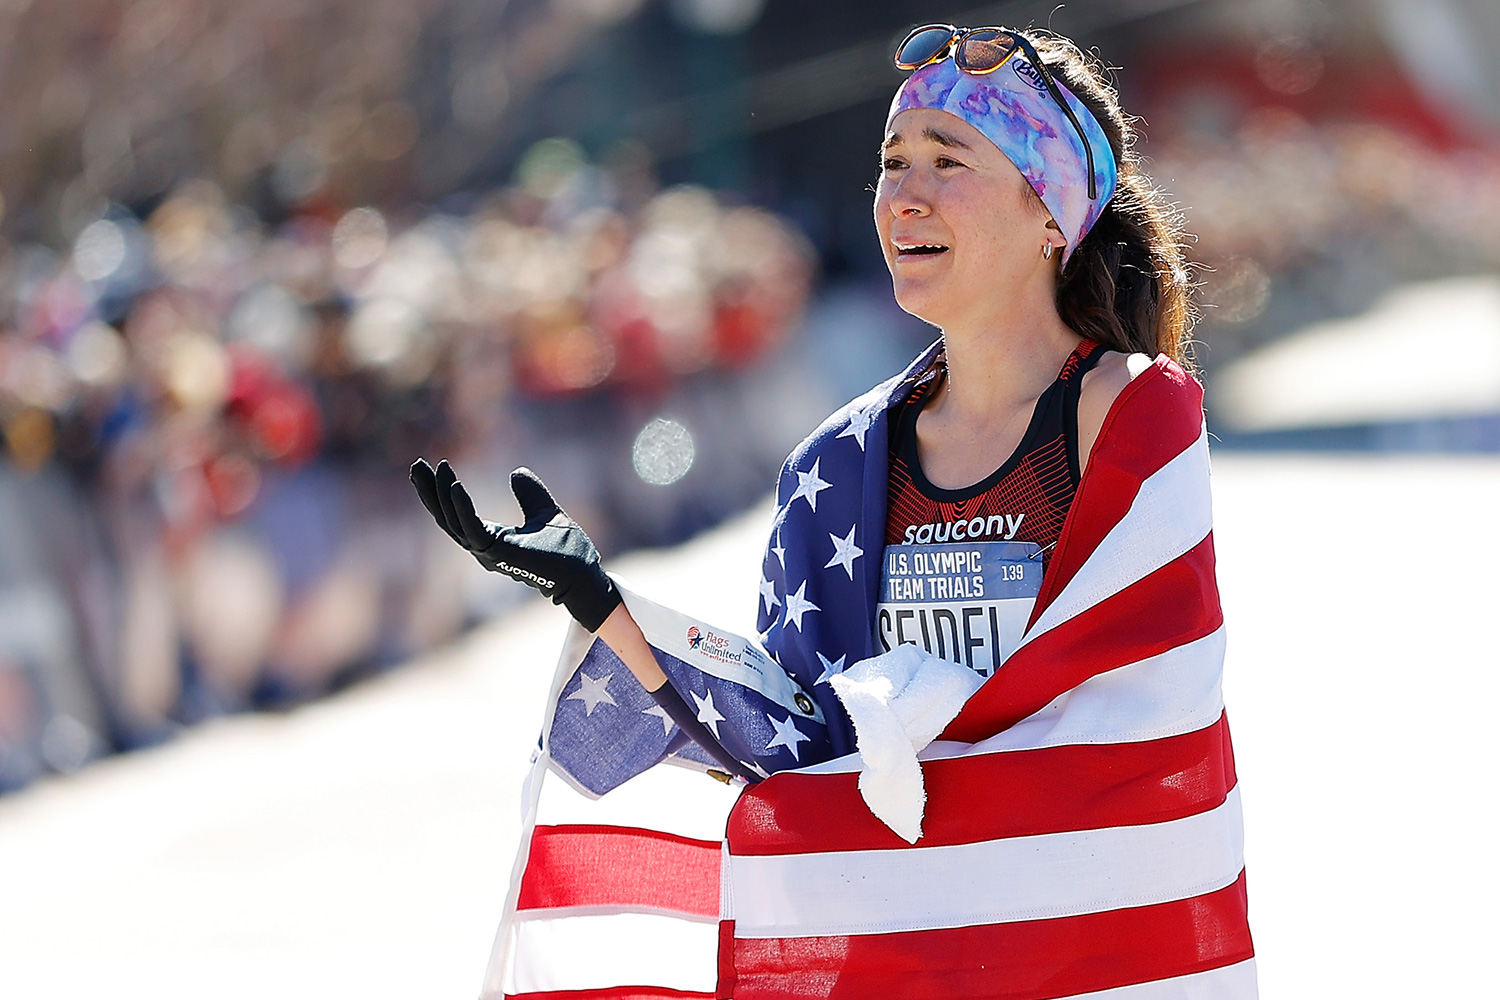 Molly Seidel reacts after finishing second in the Women's U.S. Olympic marathon team trials on February 29, 2020 in Atlanta, Georgia